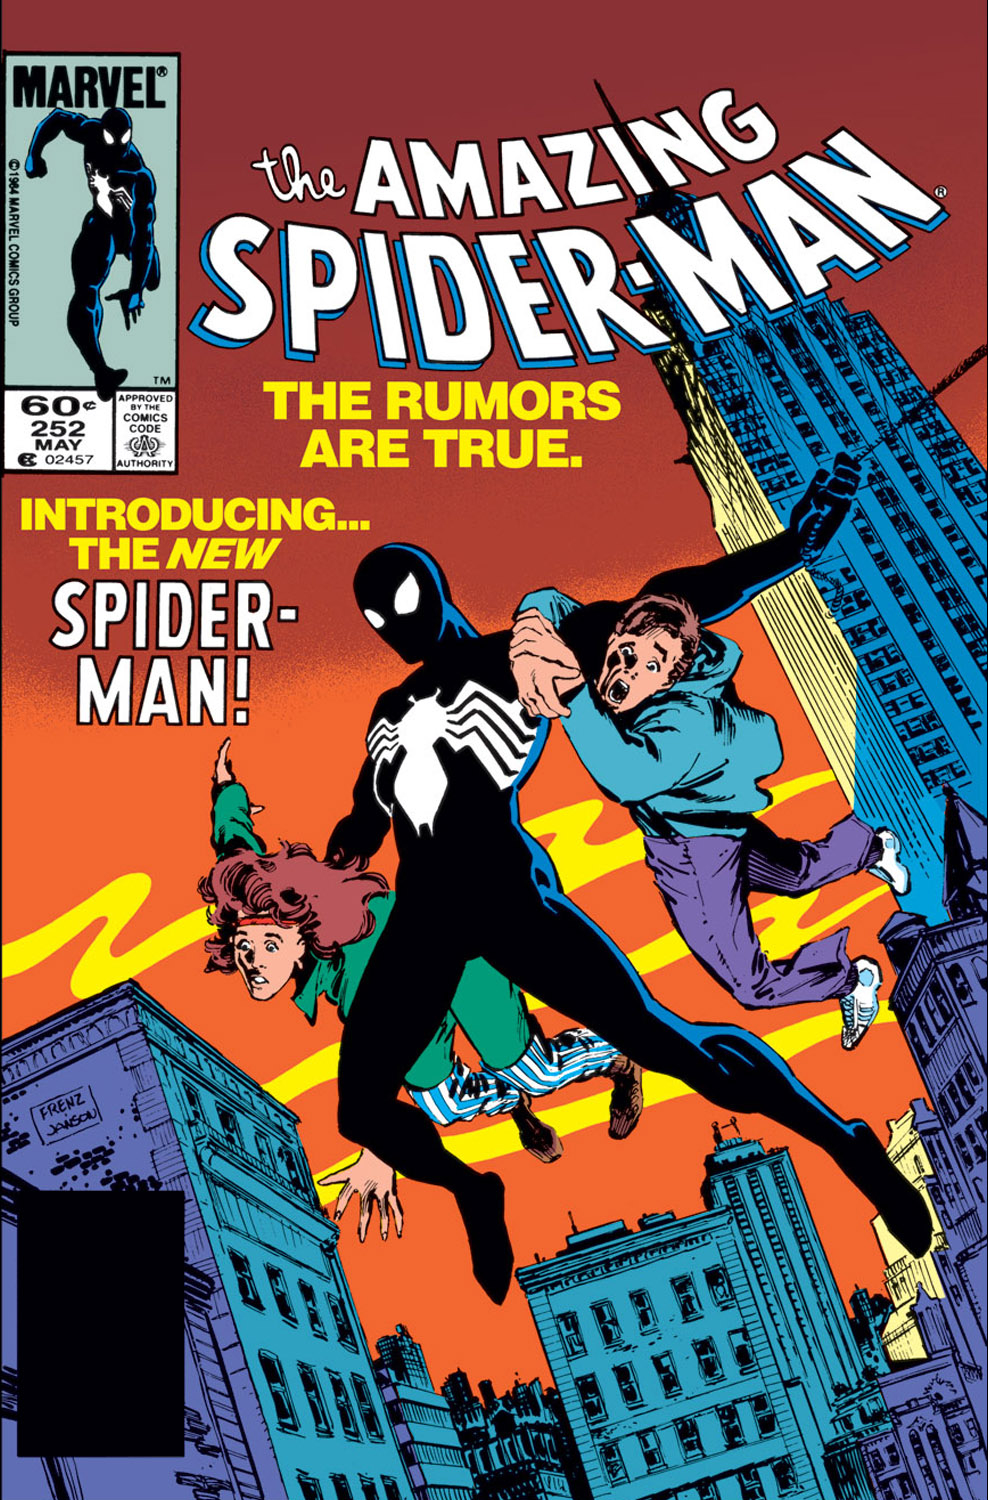 http://img2.wikia.nocookie.net/__cb20060119105854/marveldatabase/images/0/08/Amazing_Spider-Man_Vol_1_252.jpg